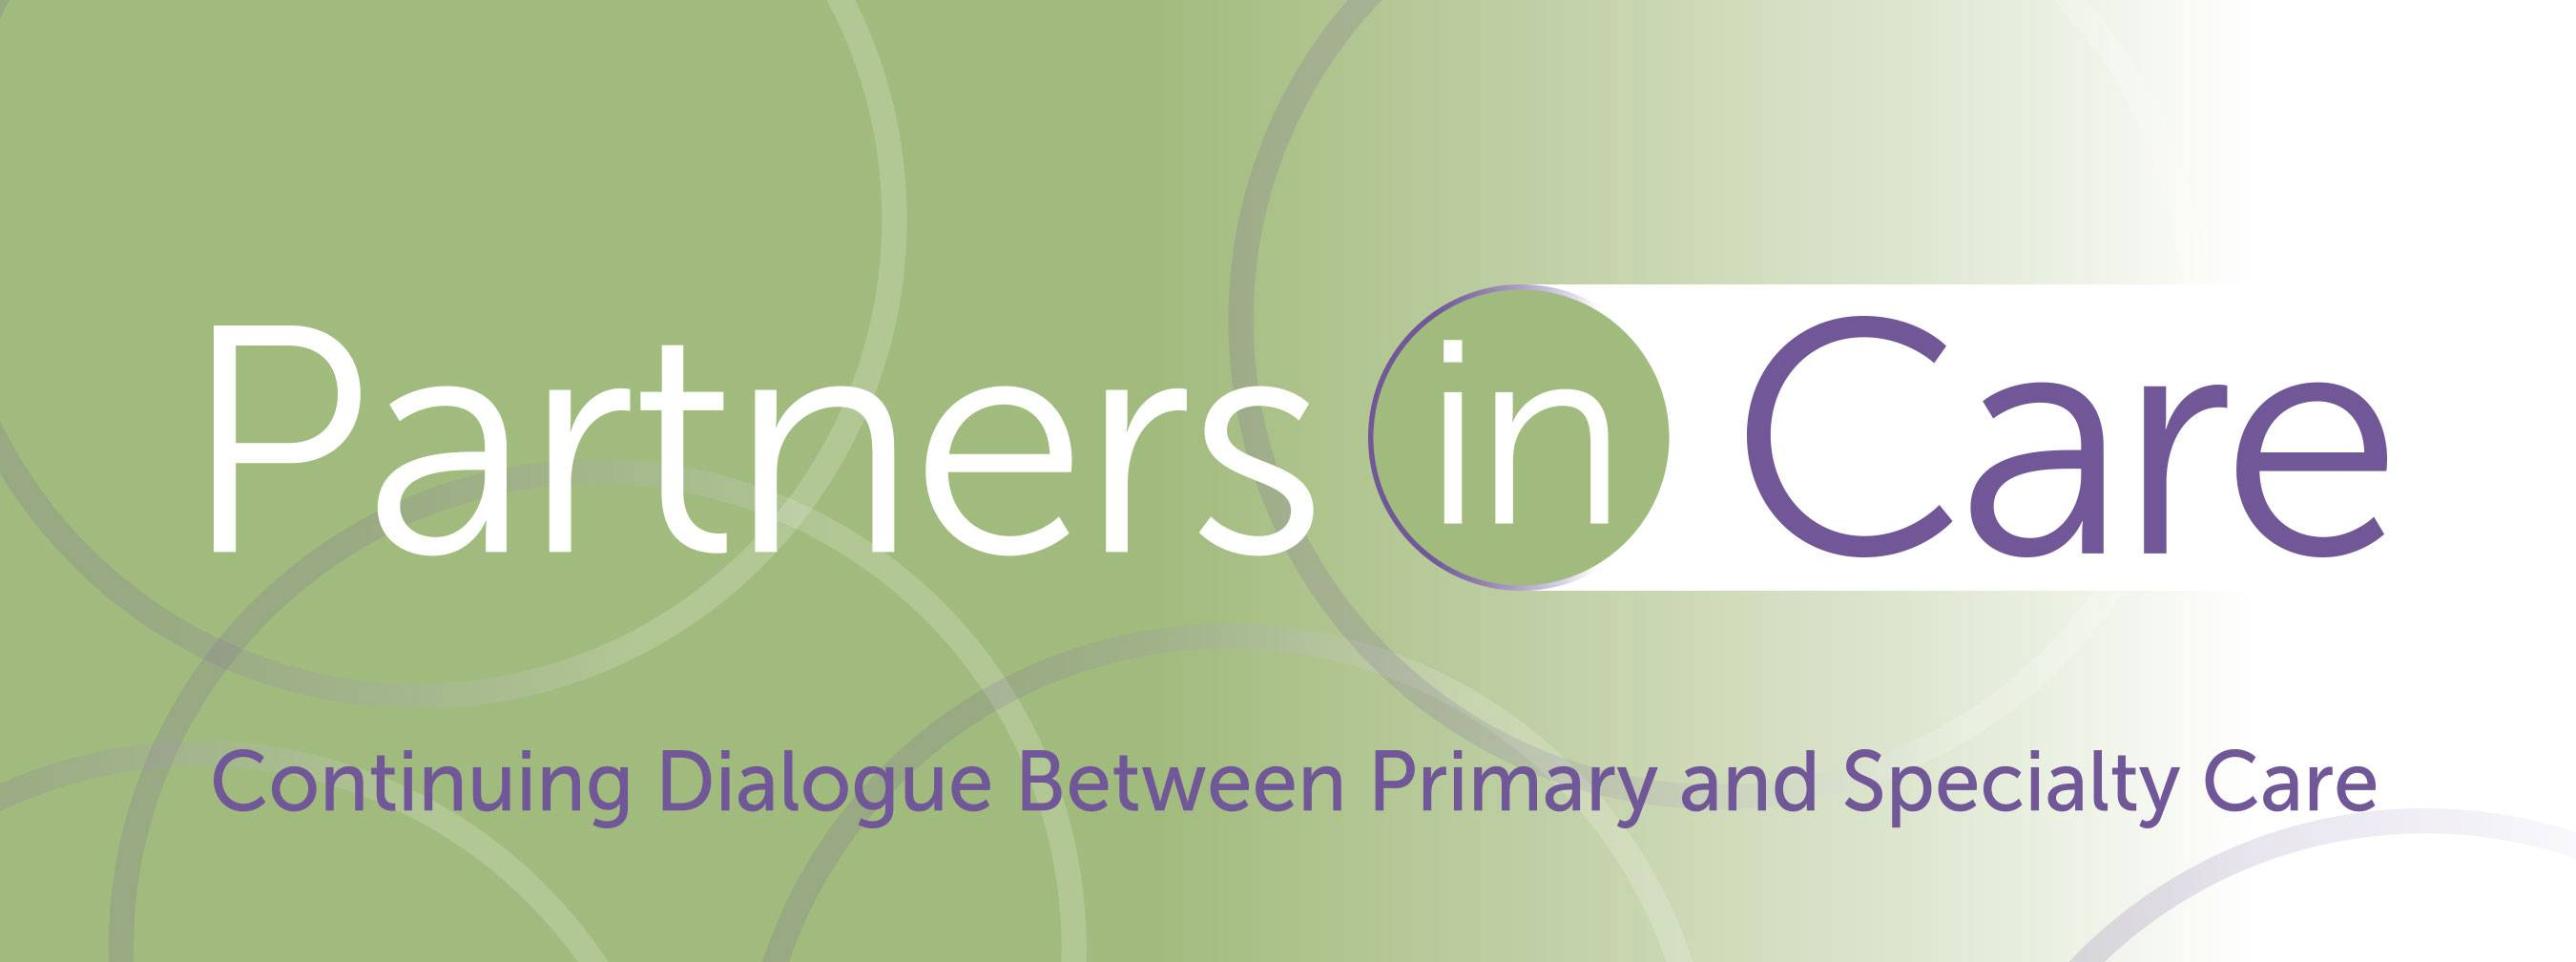 Partners in Care webinar series logo